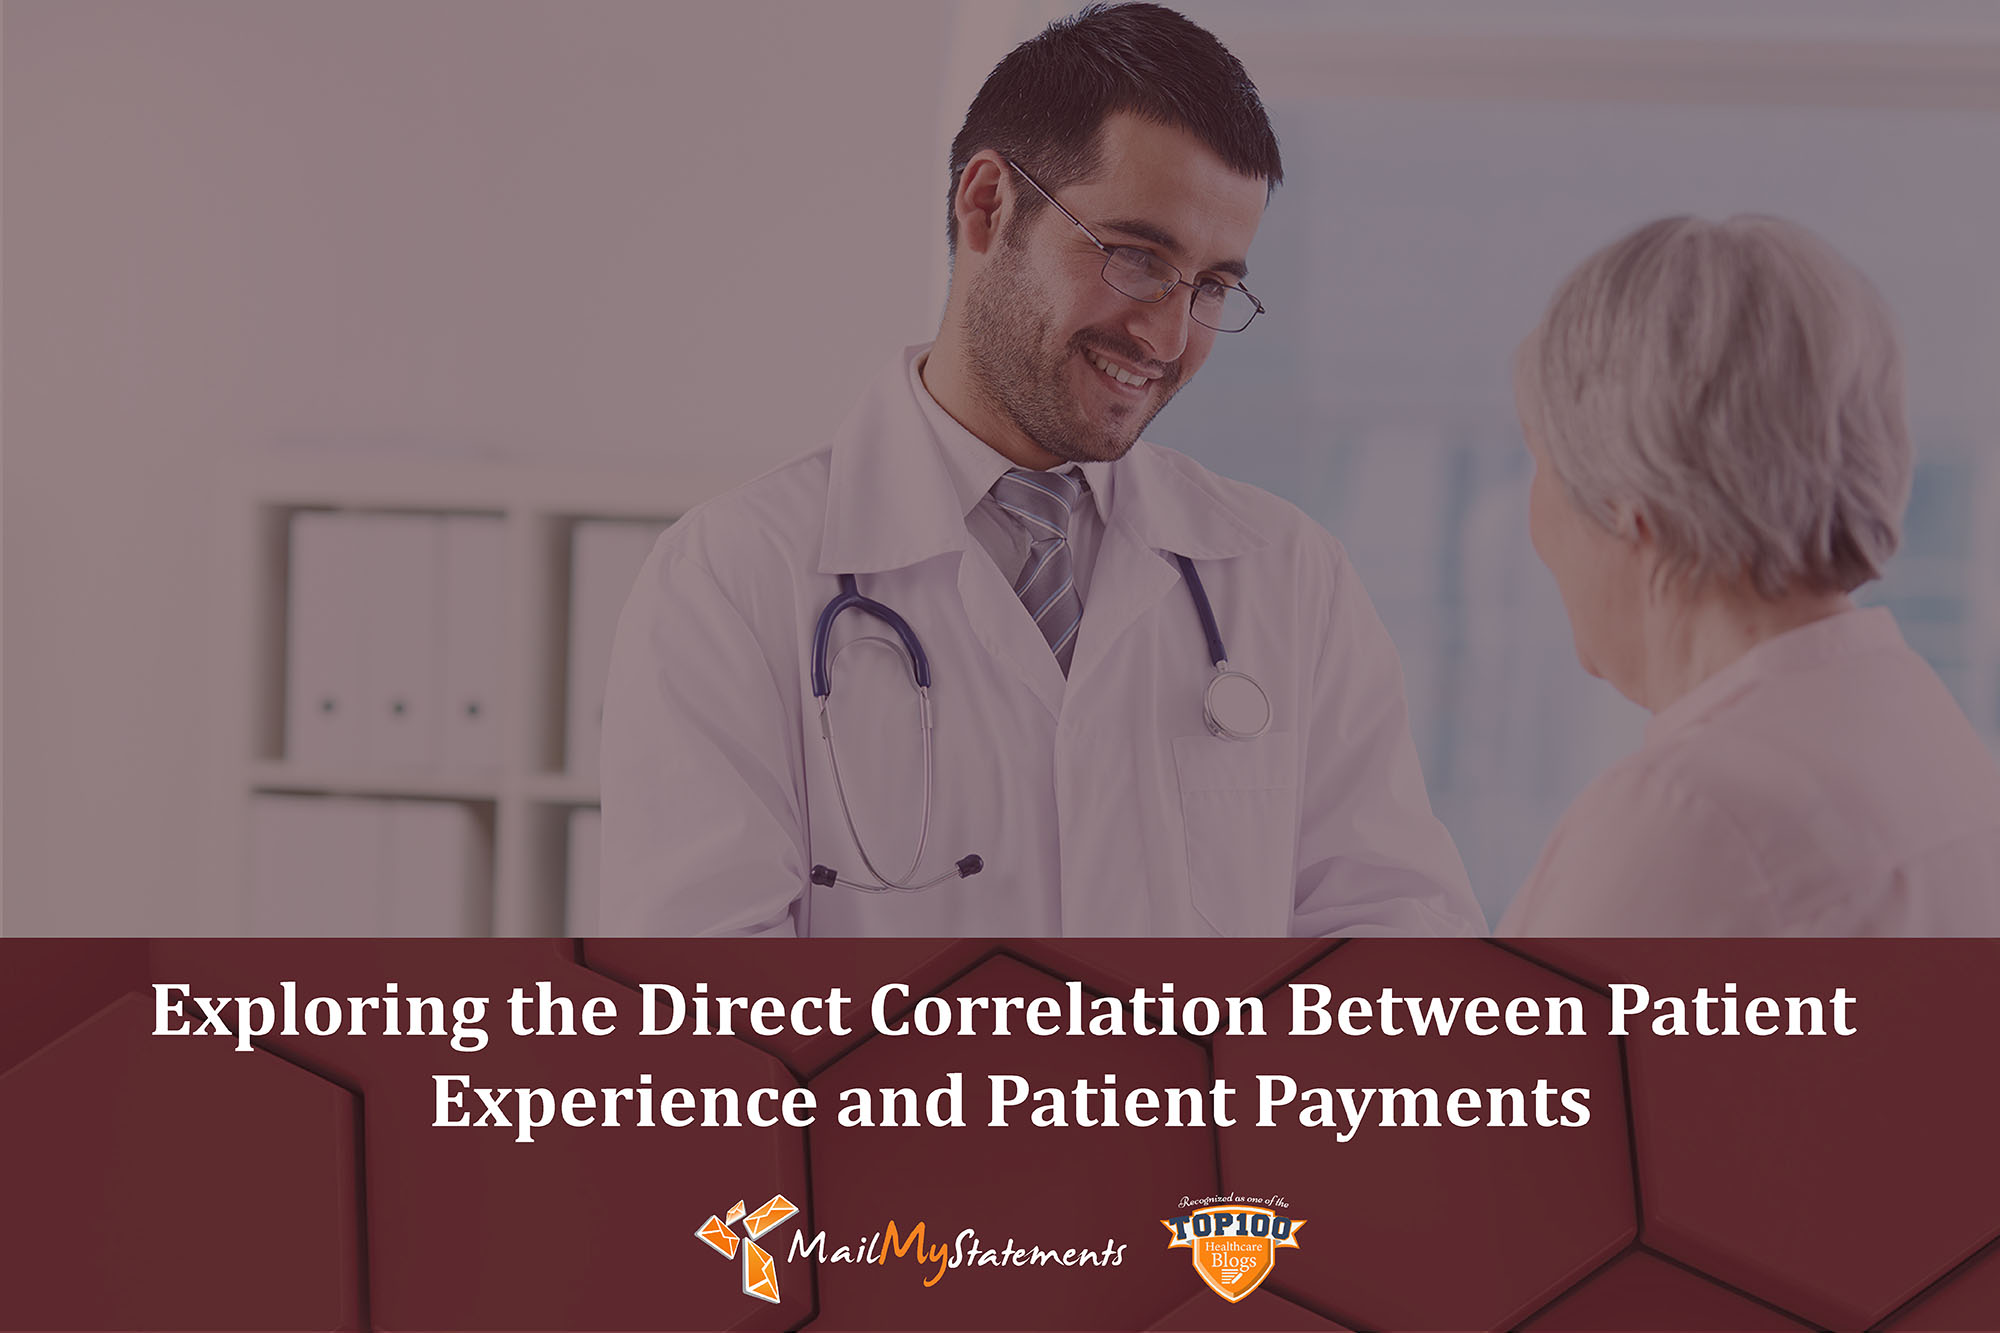 Patient Payments Directly Correlate with Patient Experience